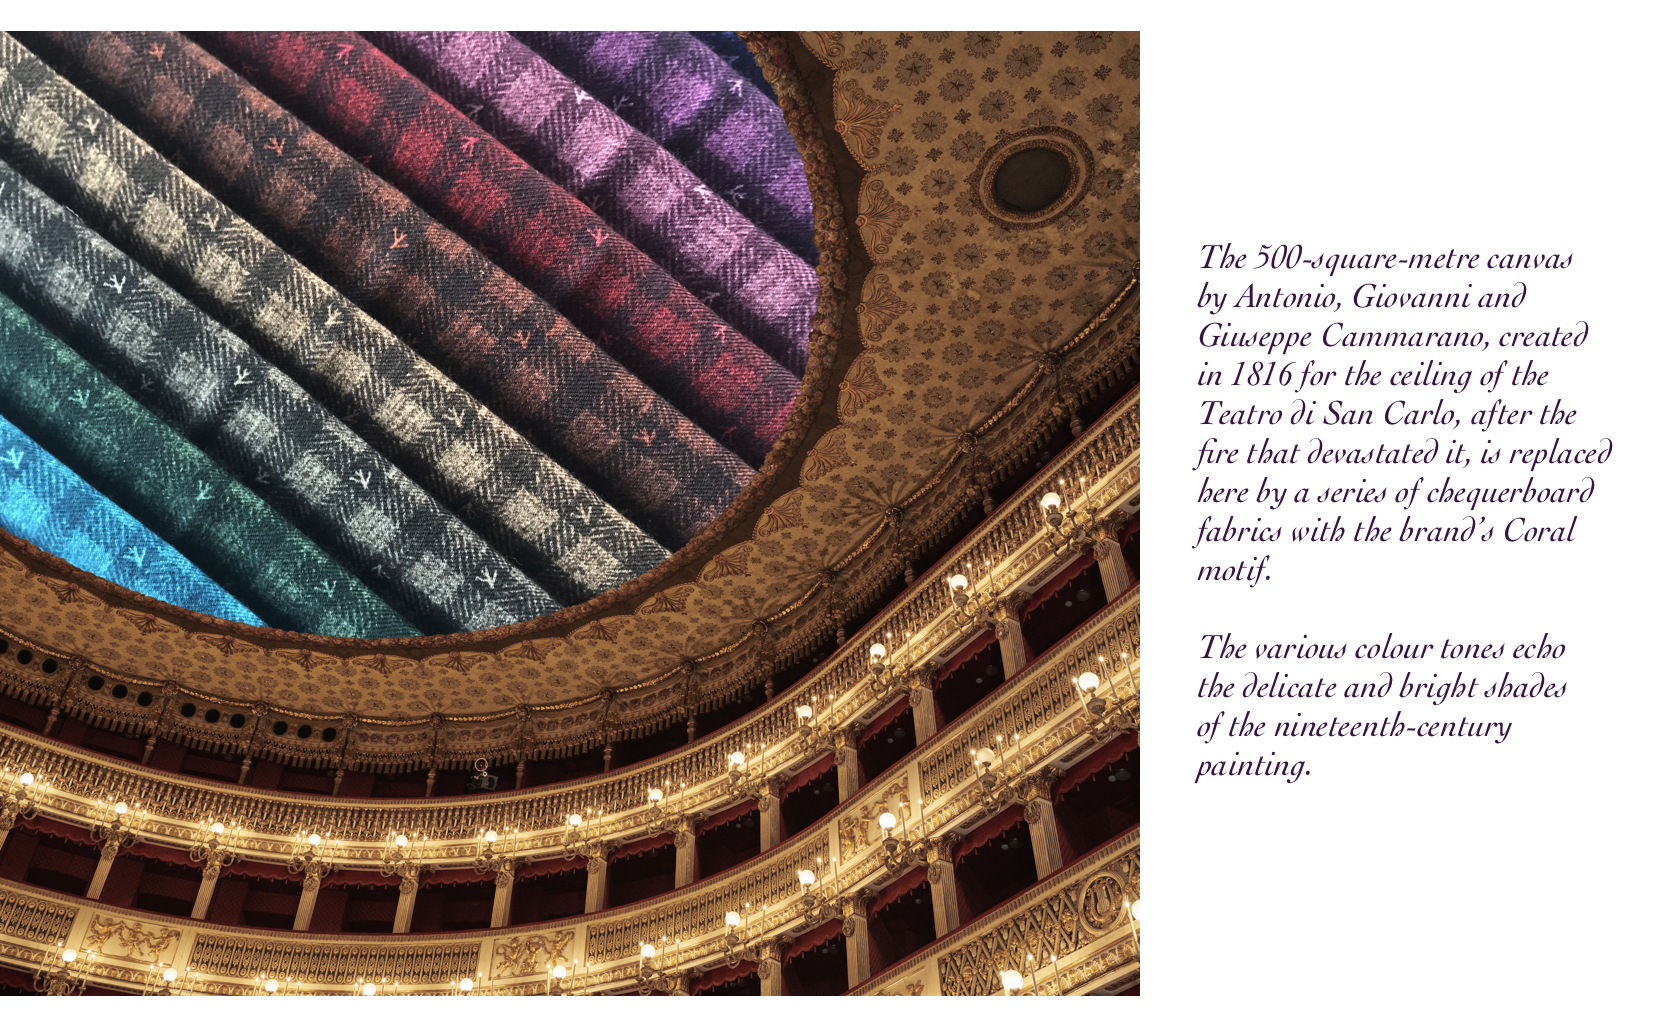 The 500-square-metre canvas by Antonio, Giovanni and Giuseppe Cammarano, created in 1816 for the ceiling of the Teatro di San Carlo, after the fire that devastated it, is replaced here by a series of chequerboard fabrics with the brand's Coral motif. The various colour tones echo the delicate and bright shades of the nineteenth-century painting.